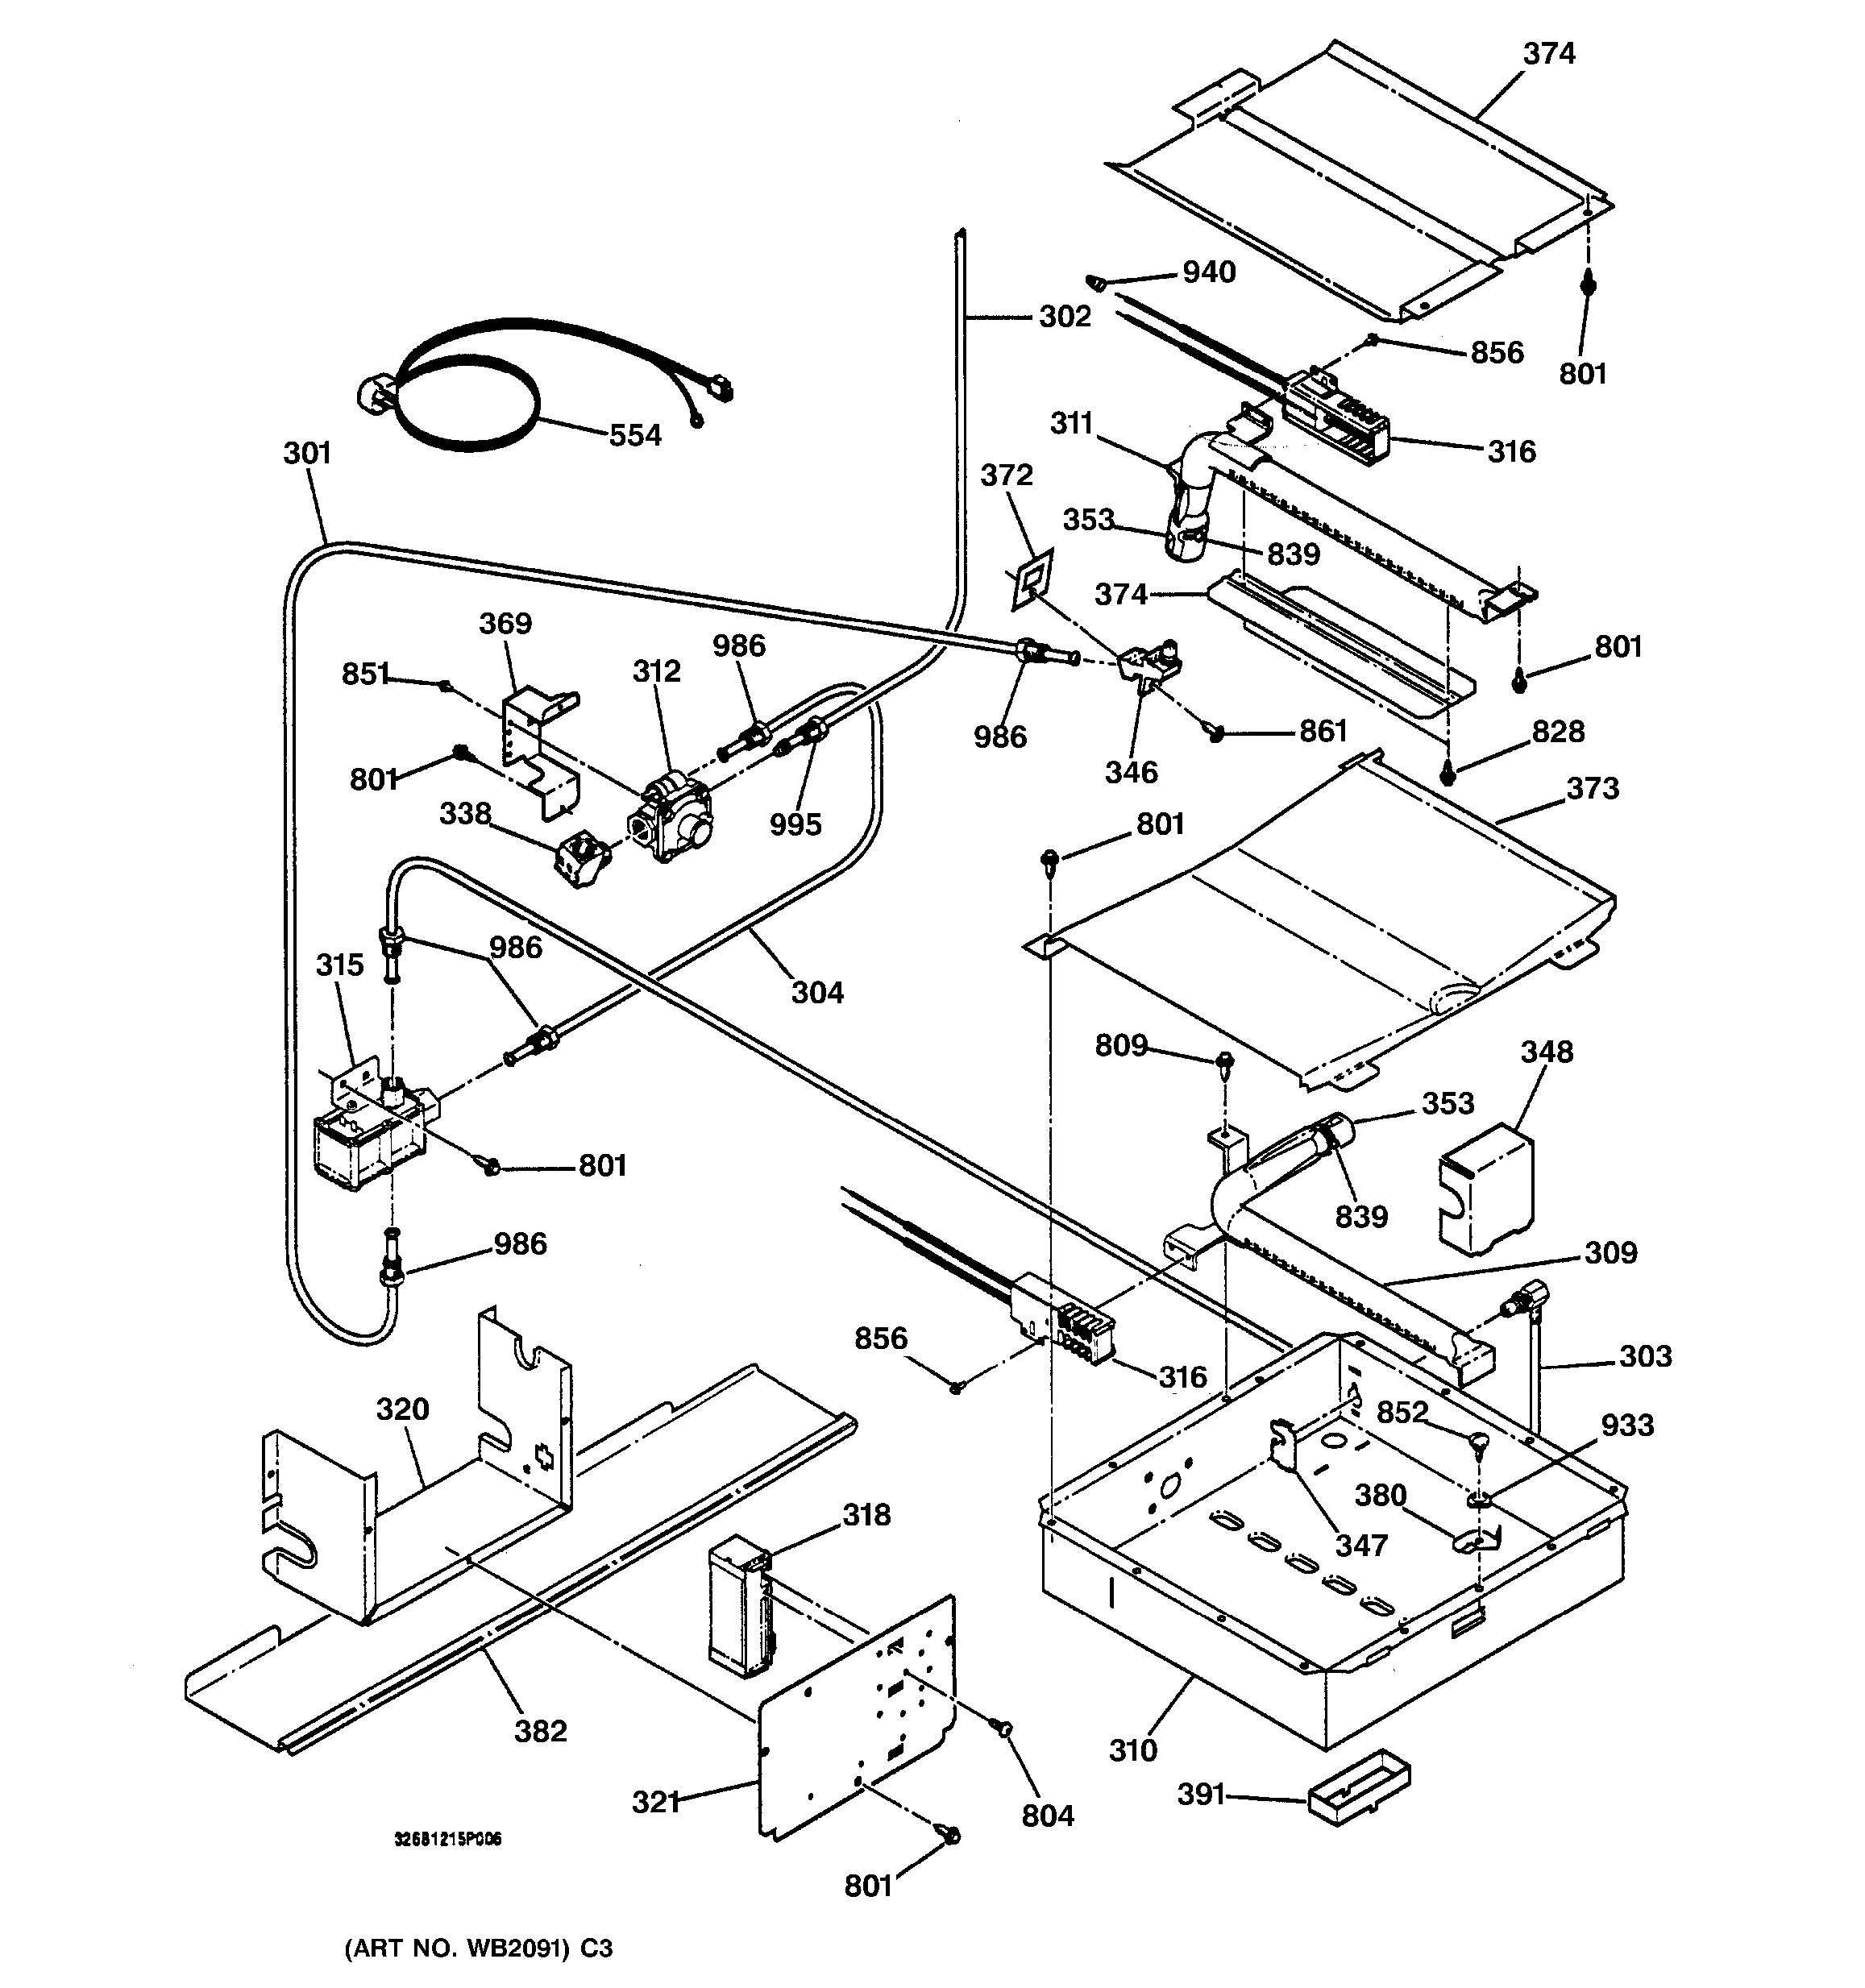 Assembly View For Oven Burner